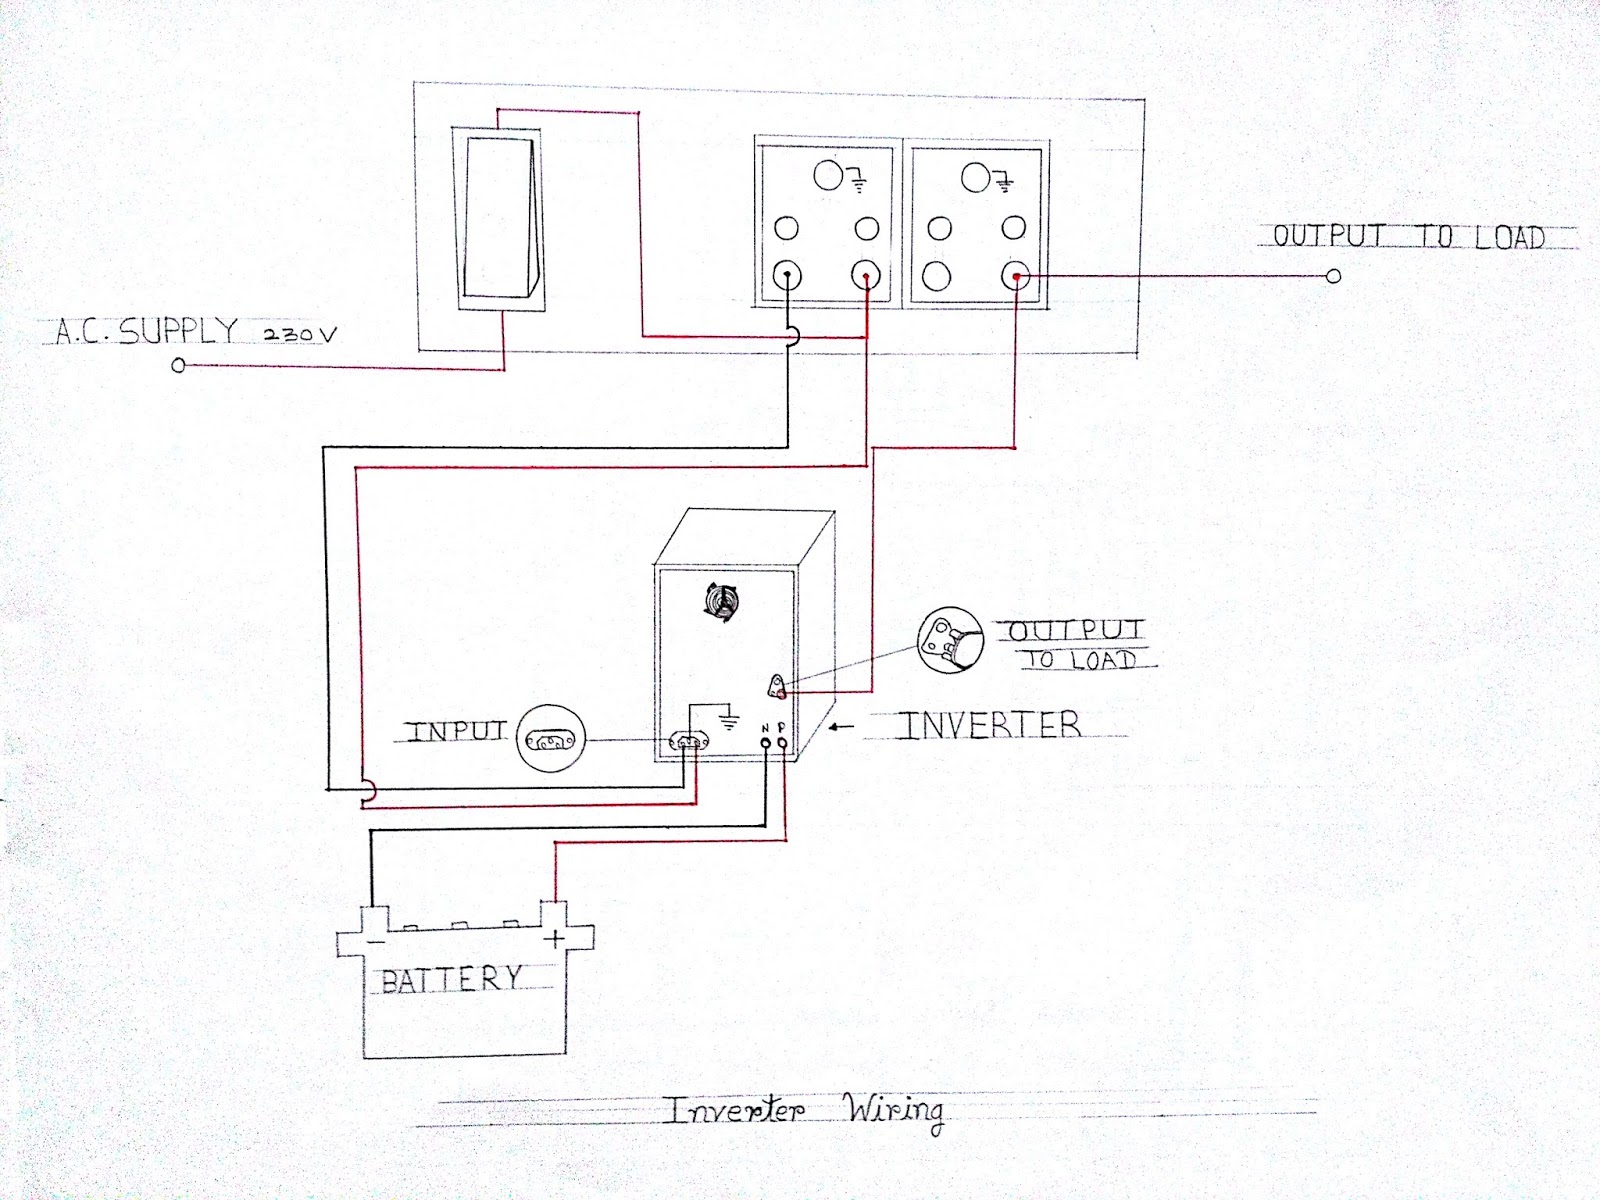 Learn Electrician: Inverter Wiring Diagram